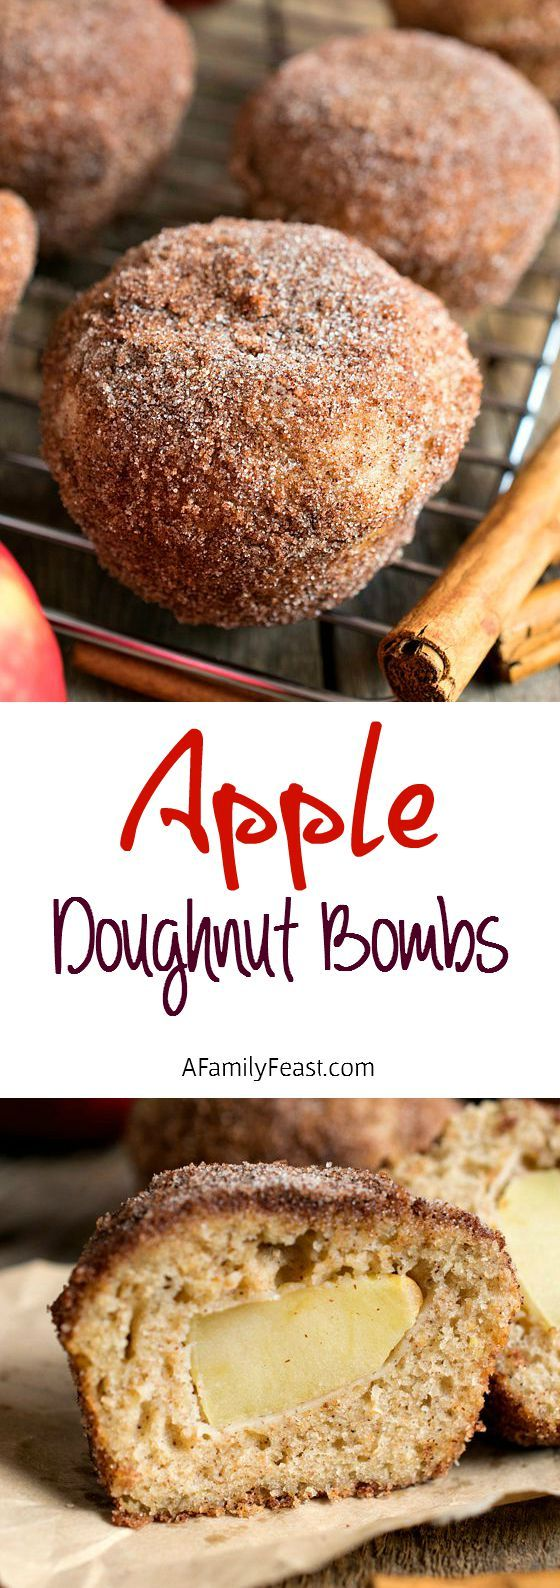 Apple Doughnut Bombs - Light and delicious apple cinnamon topped doughnuts with a sweet apple surprise inside!